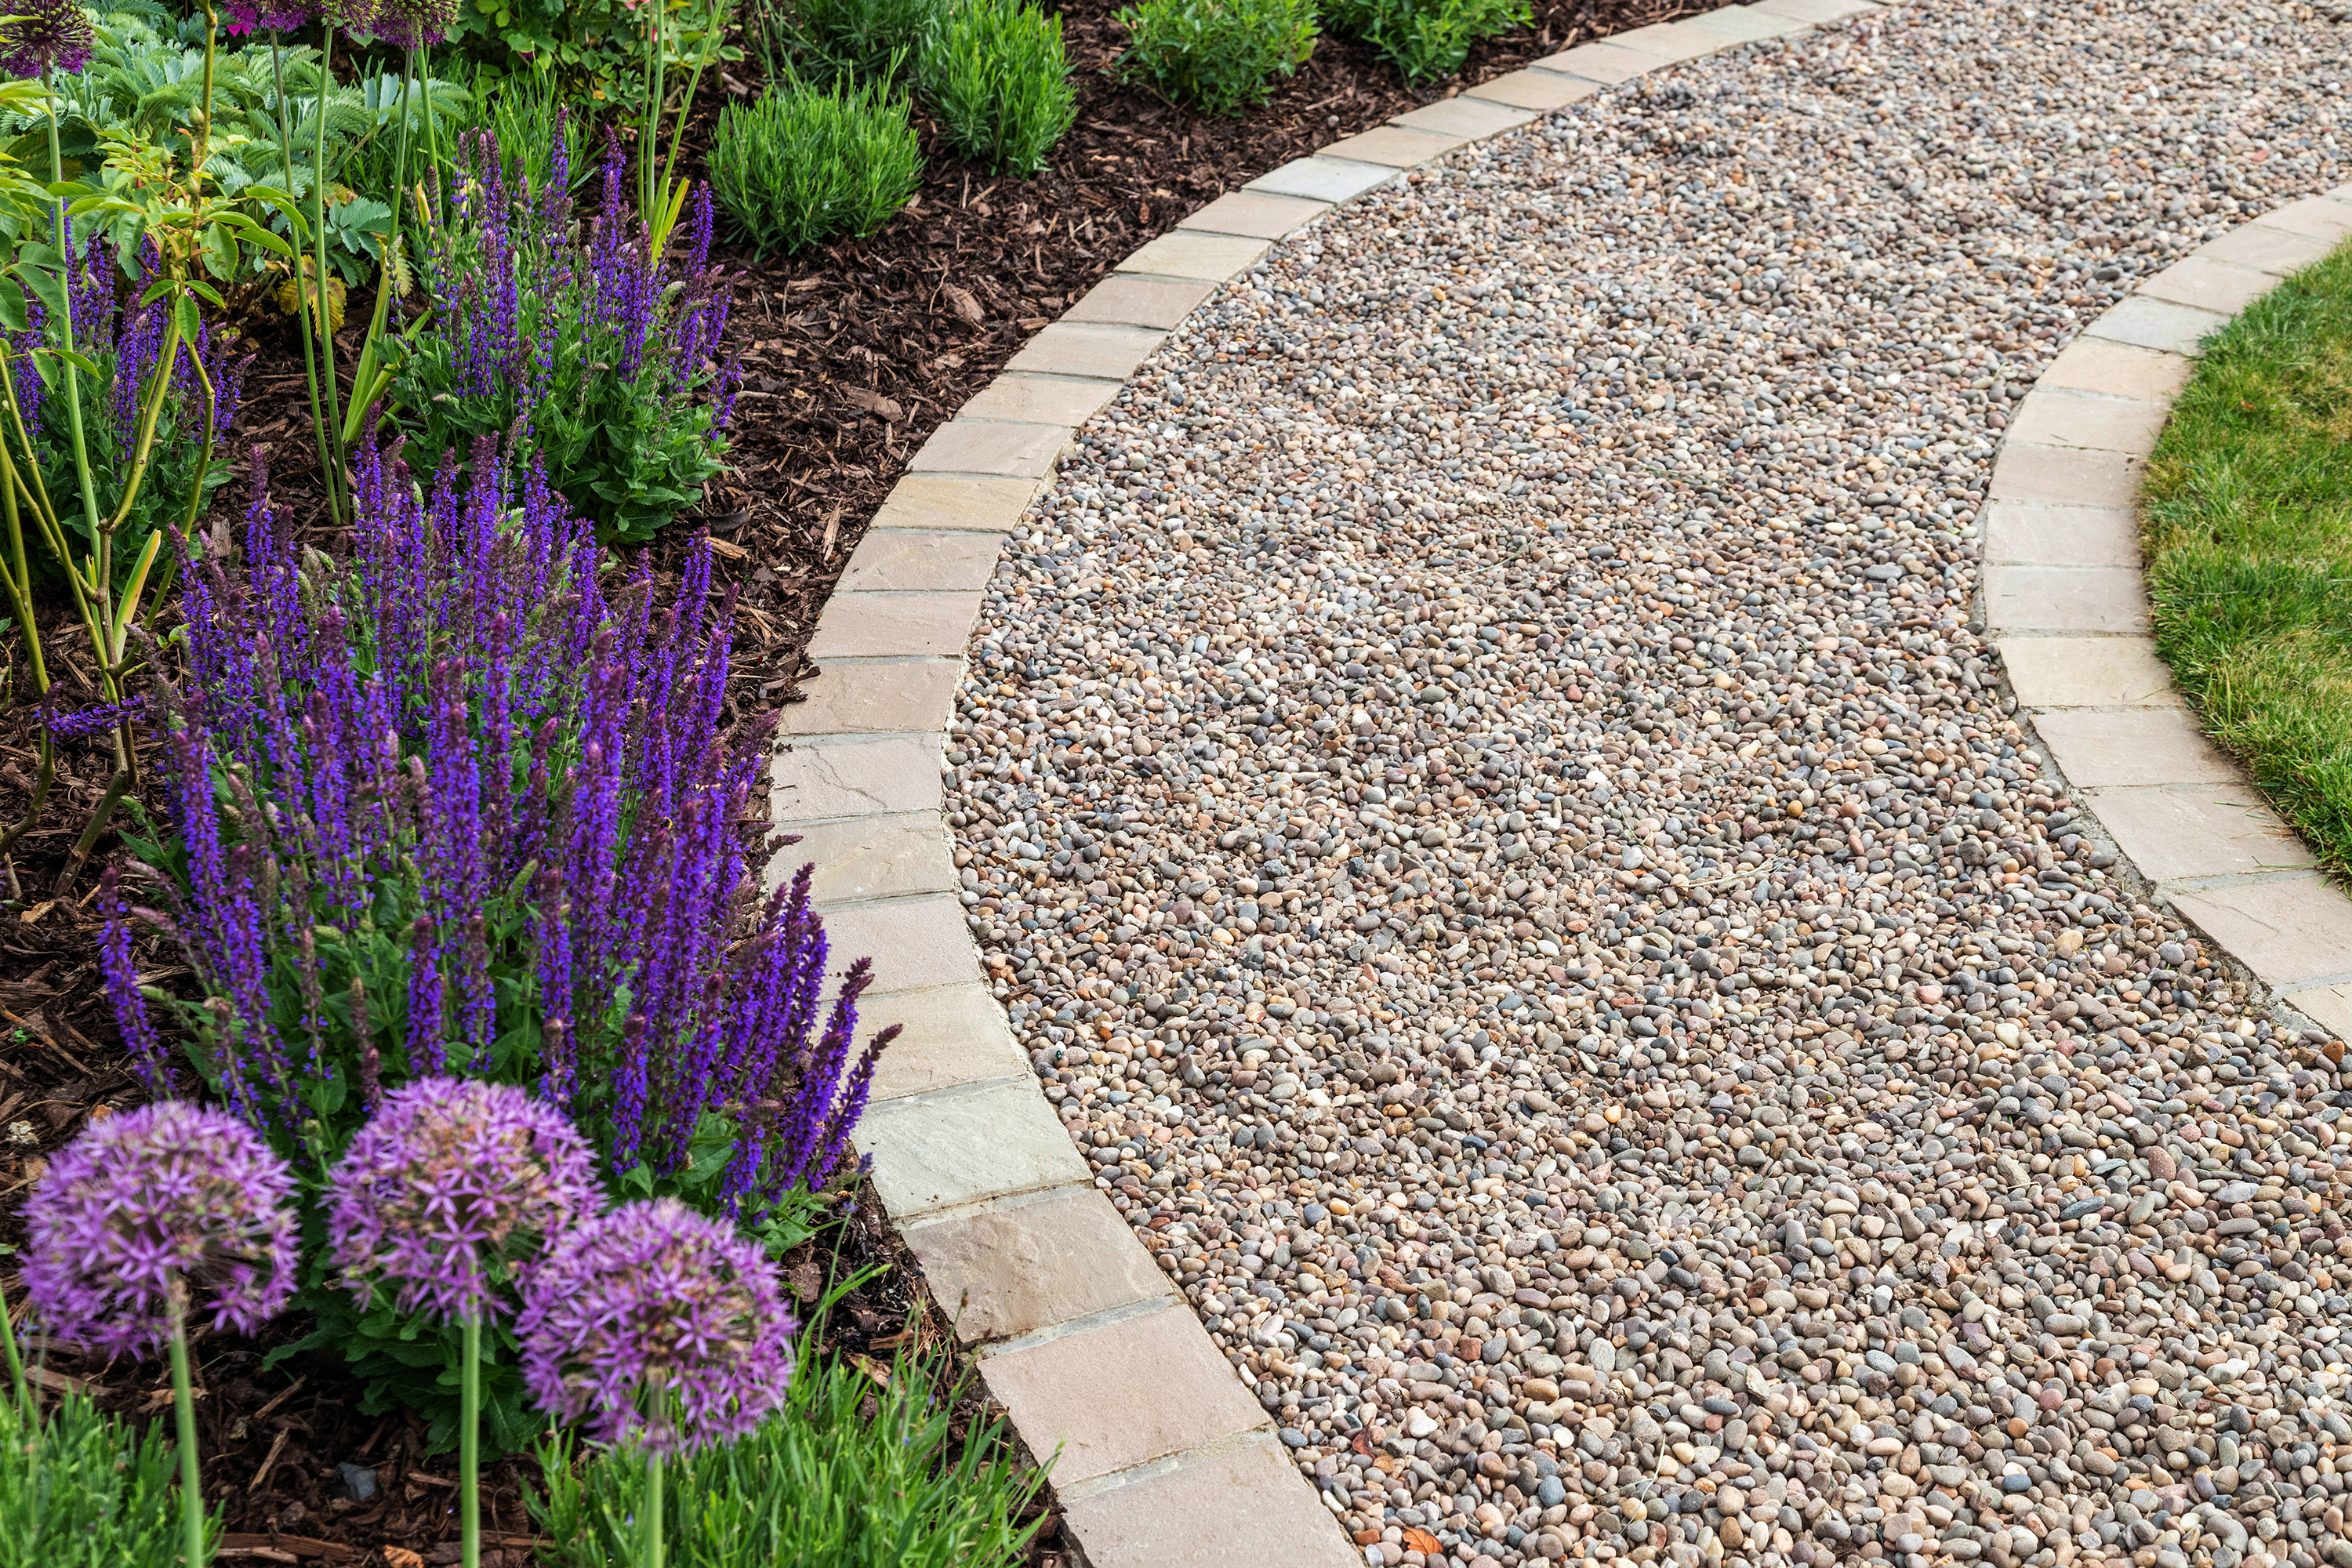 Gravel path lined with flowers.